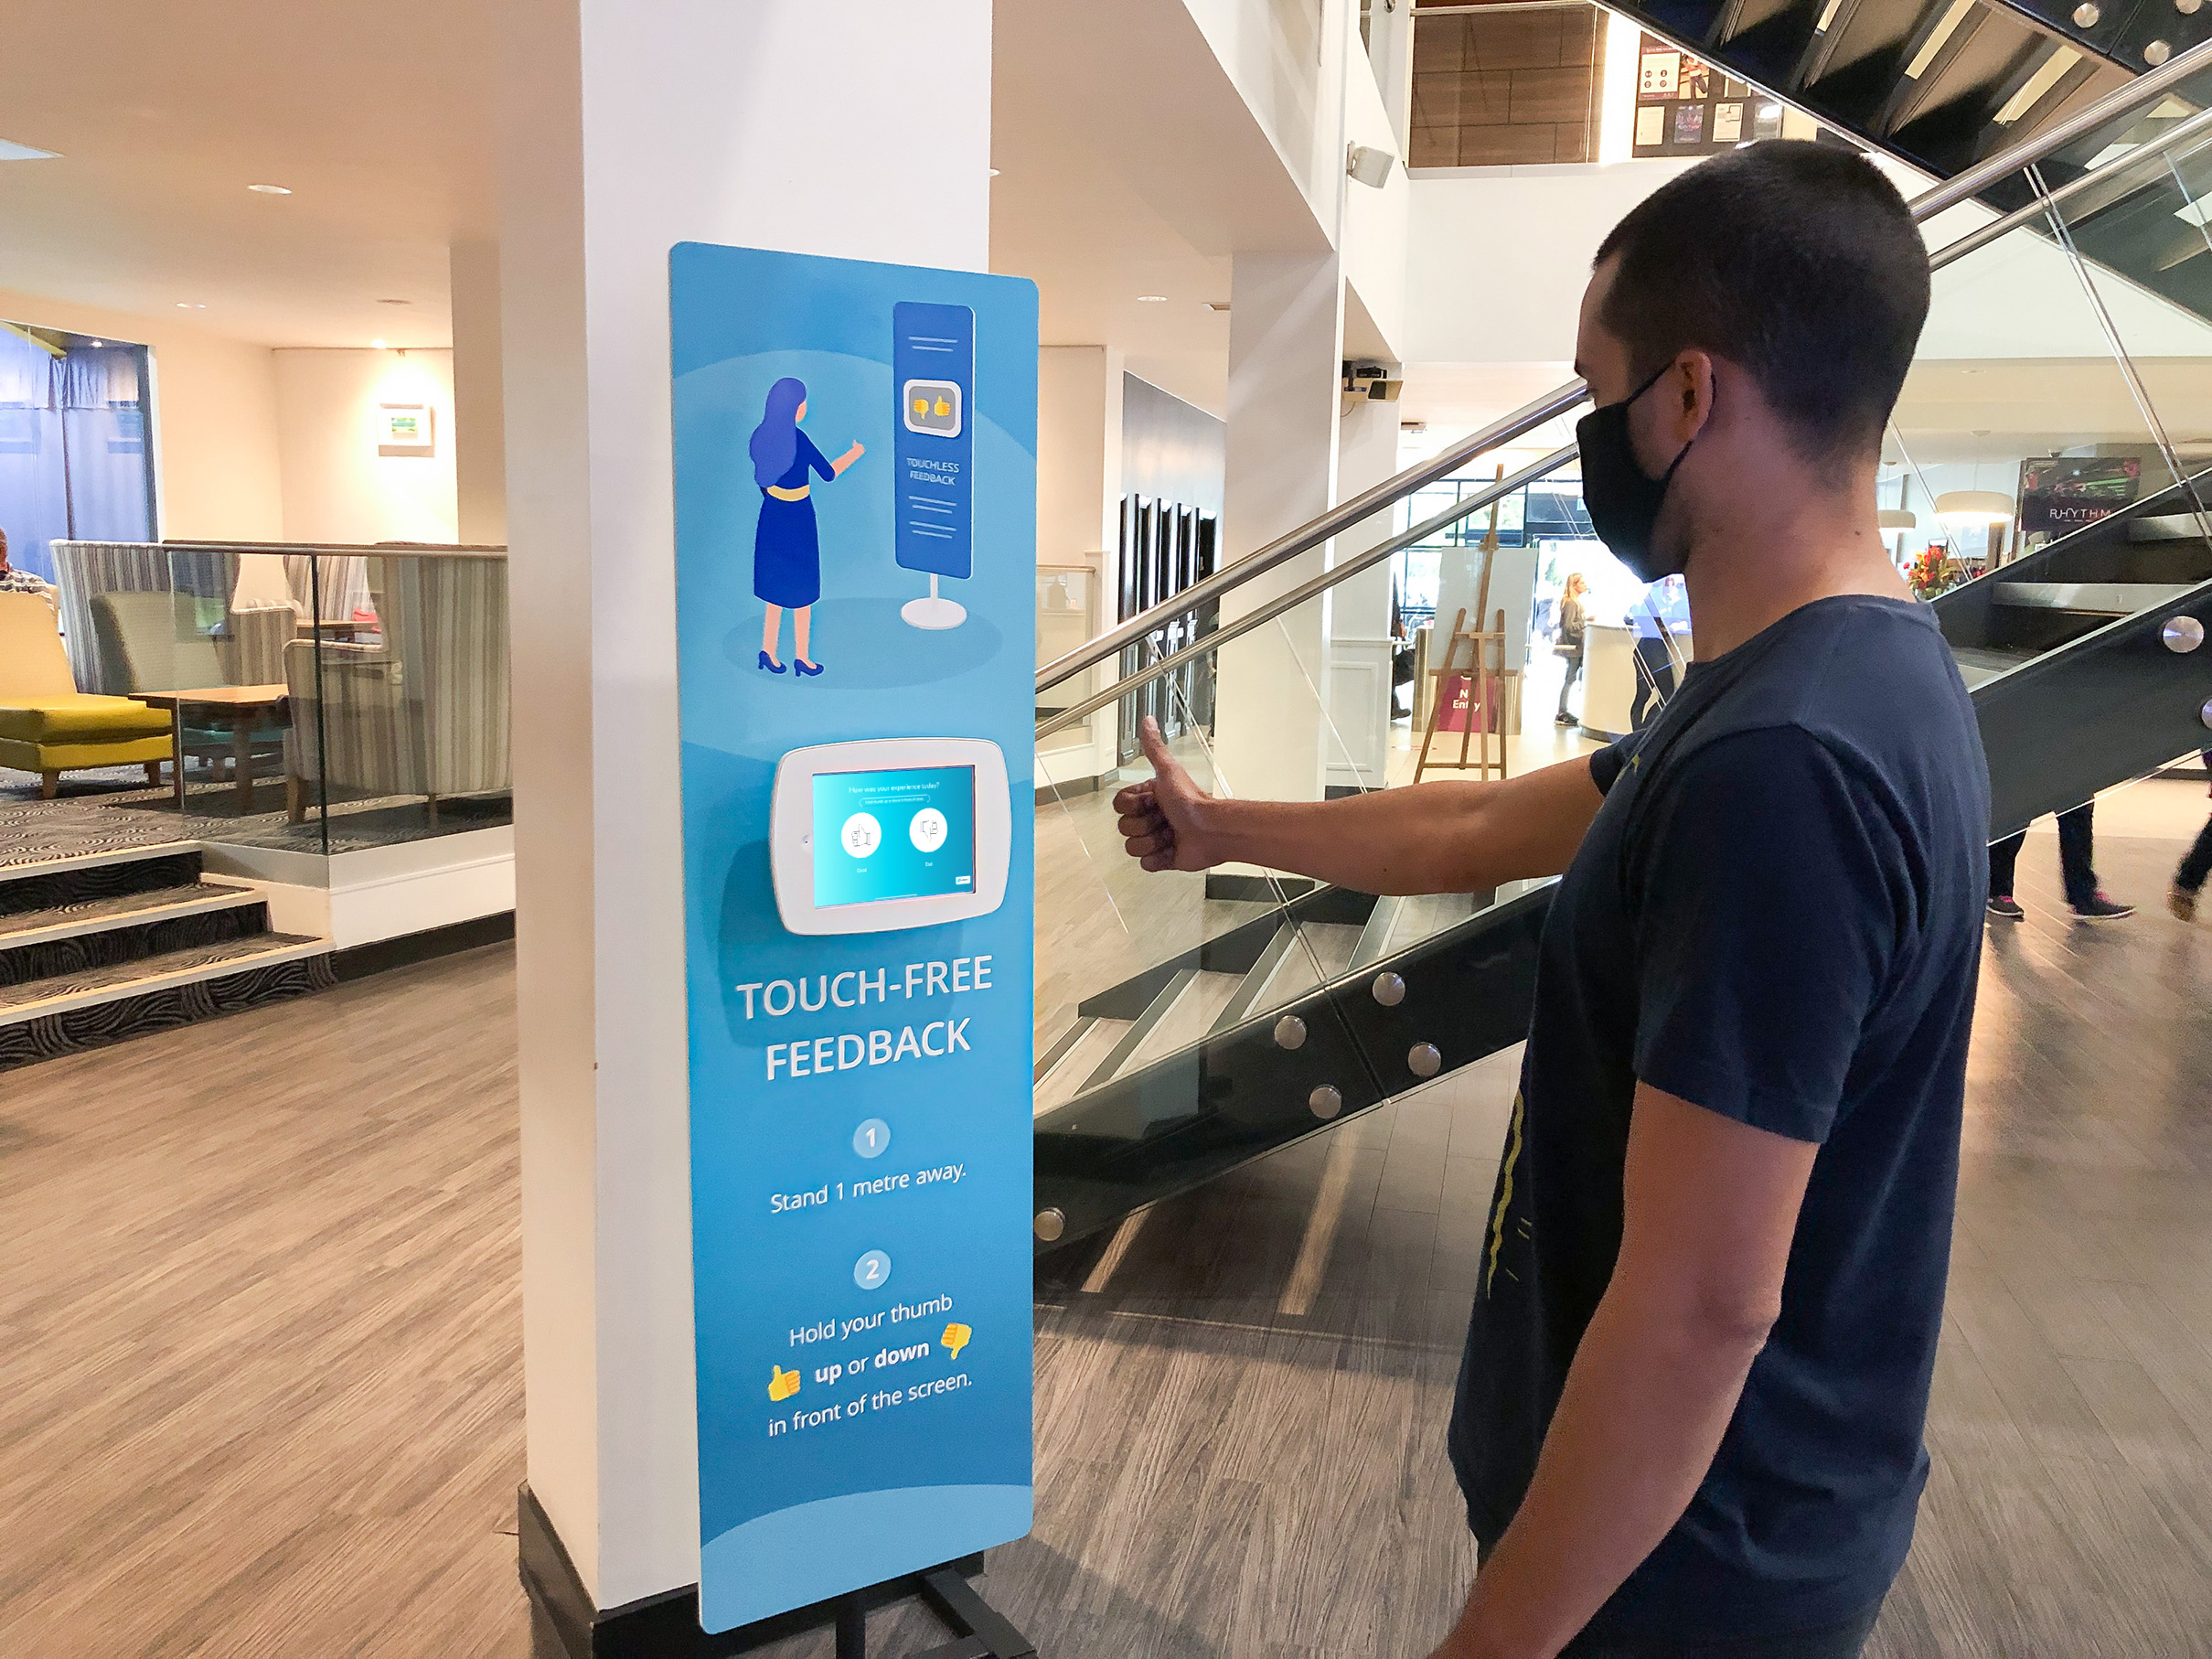 Early Look: Touchless Survey Tech Launches at David Lloyd Leisure